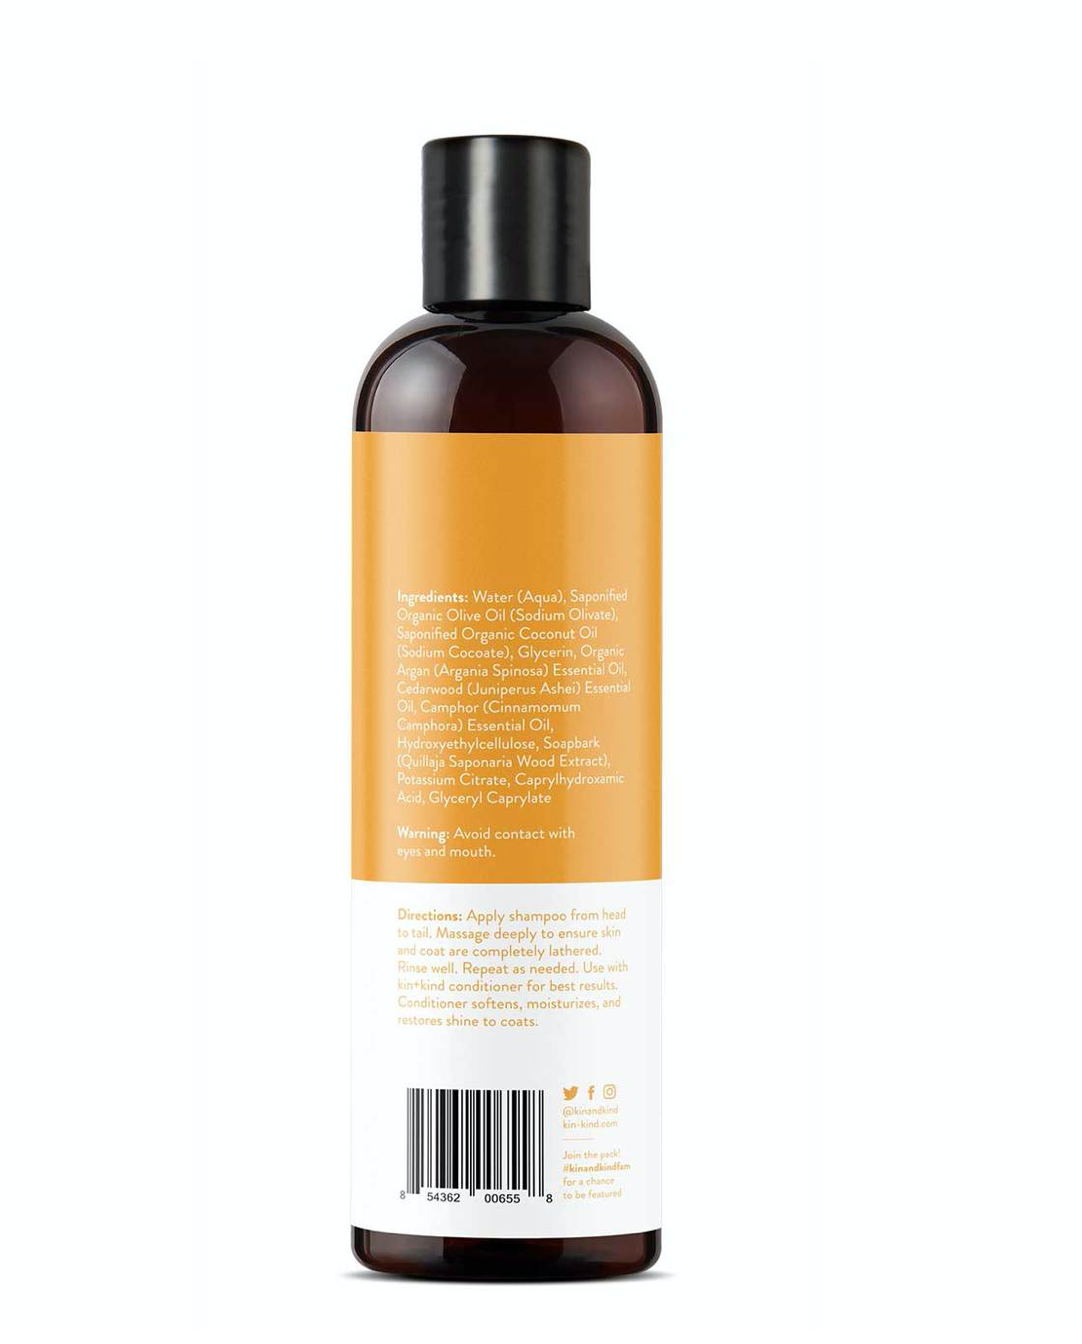 Kin + Kind Argan Repair (Dry Skin Repair)